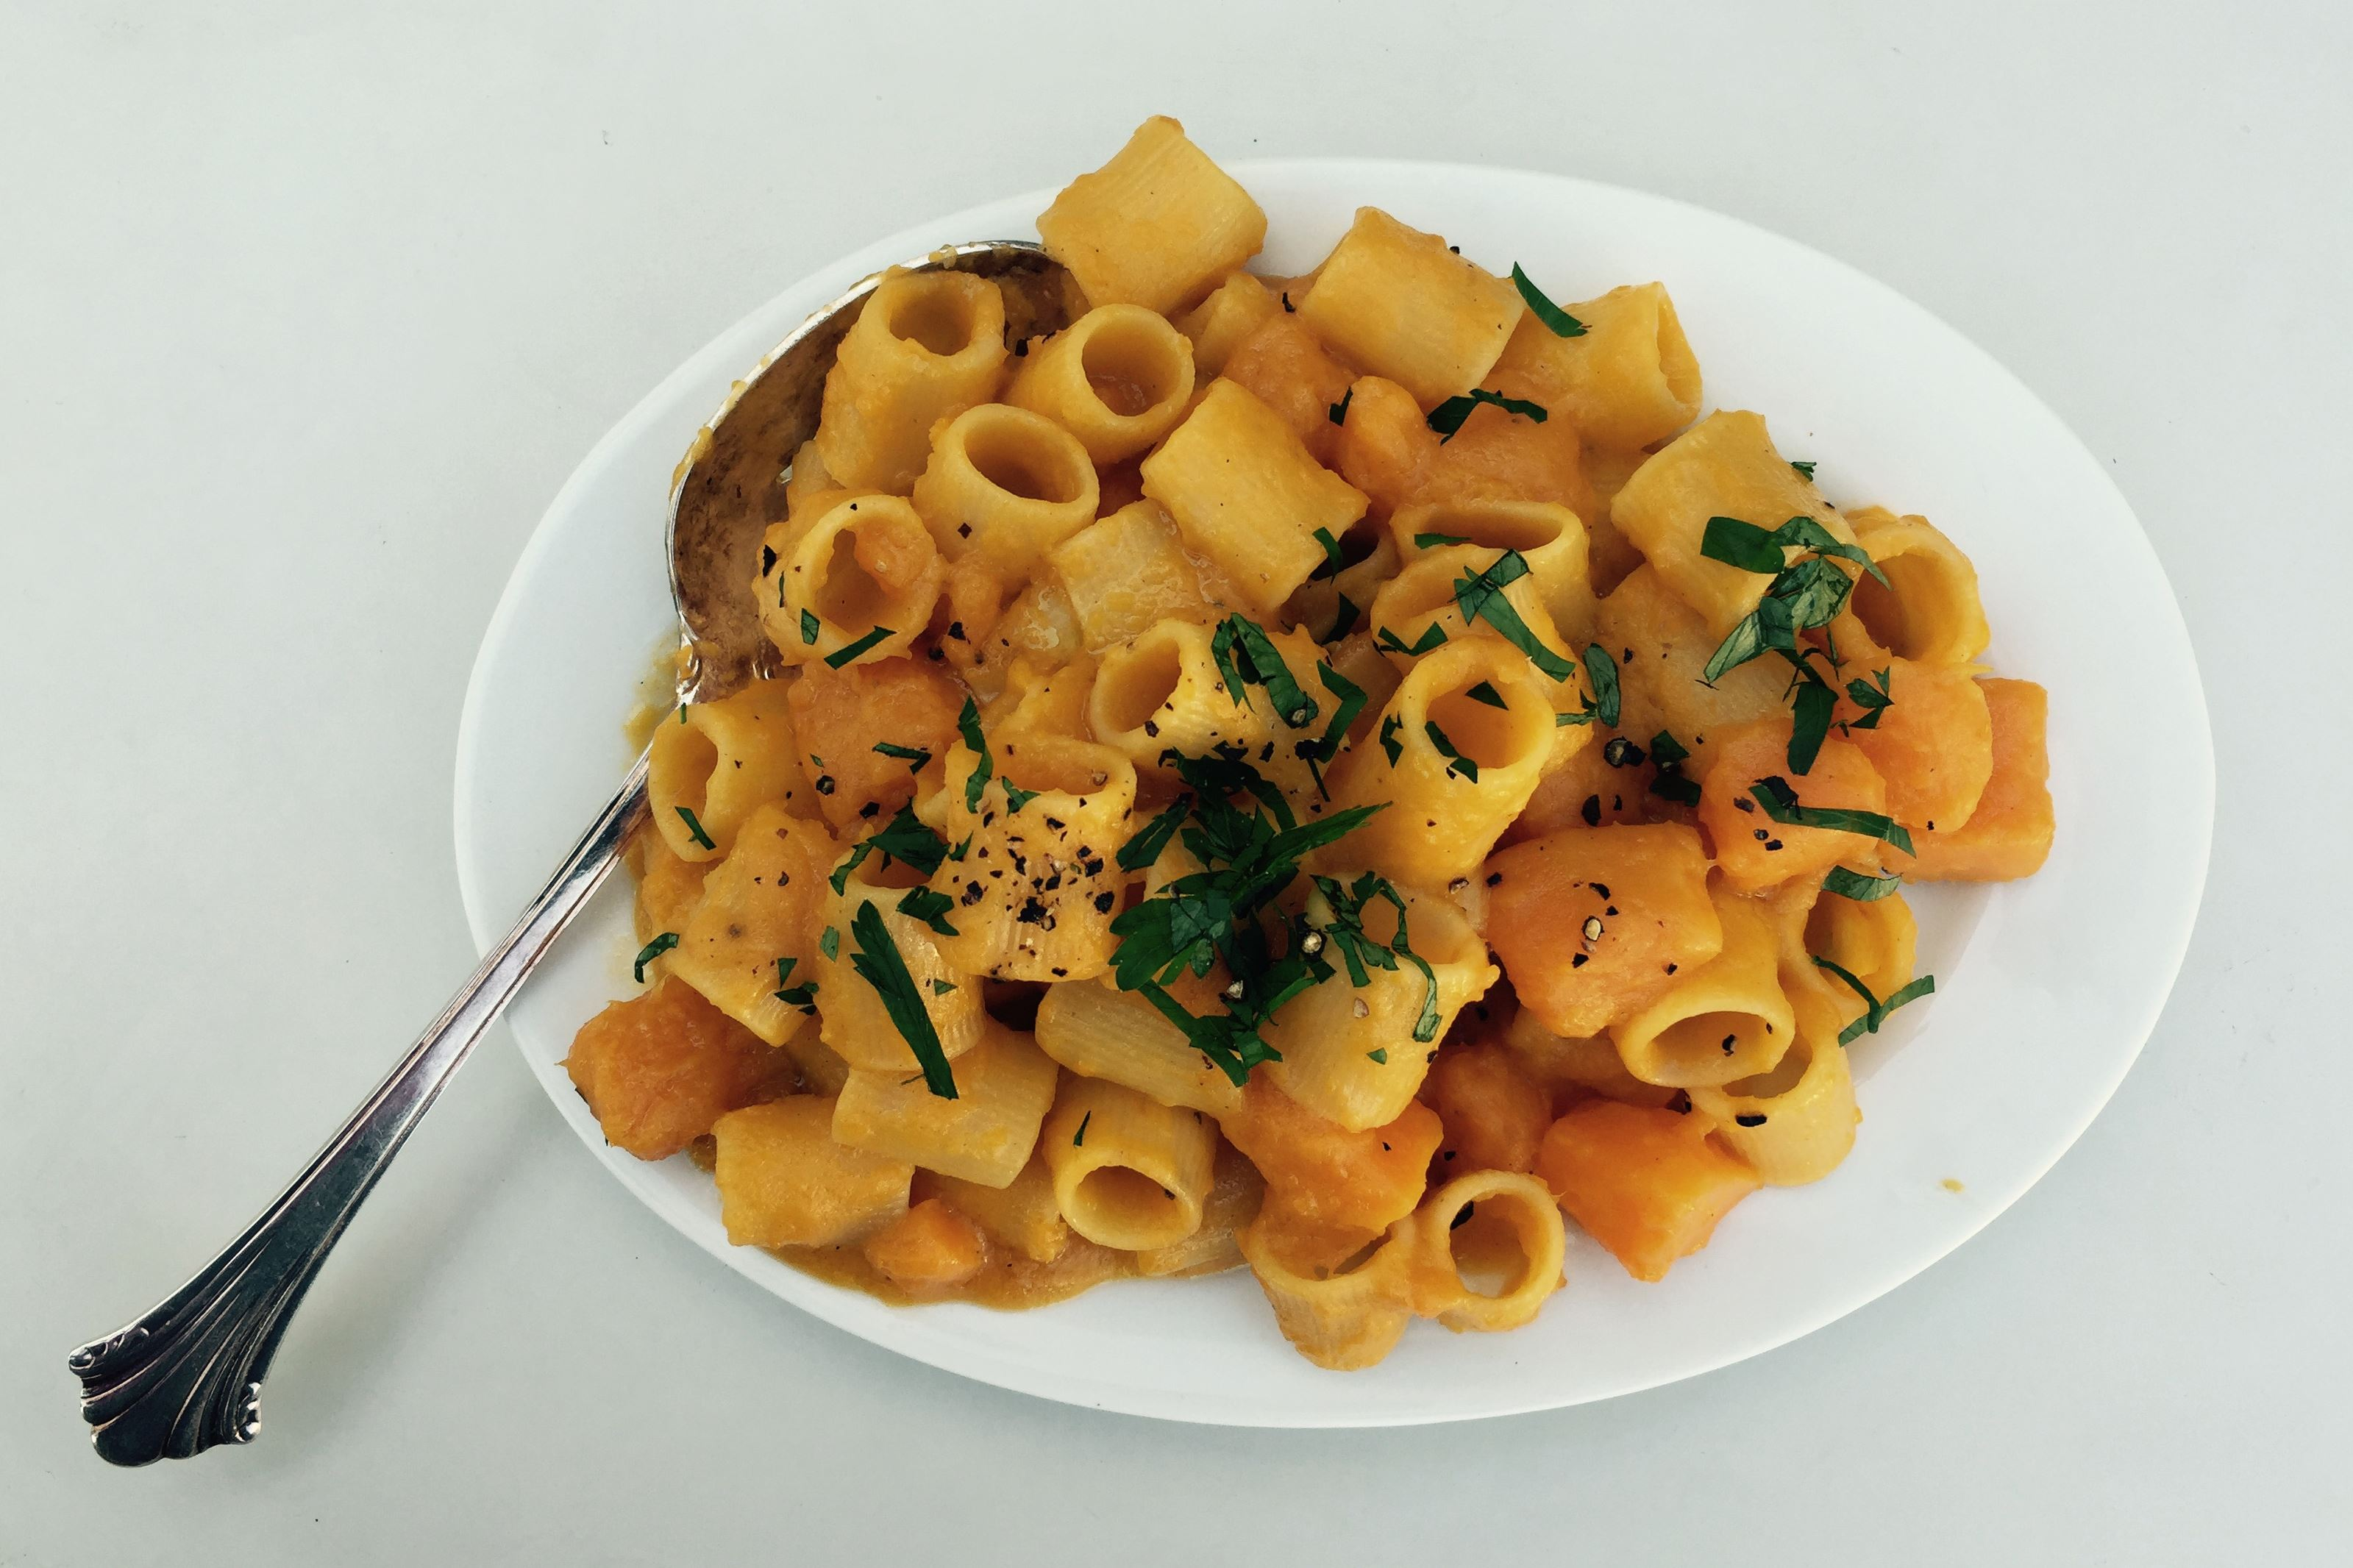 FullSizeRender-4.jpg Pasta con zucca is made by slow braising butternut squash and adding pasta in the last few minutes.